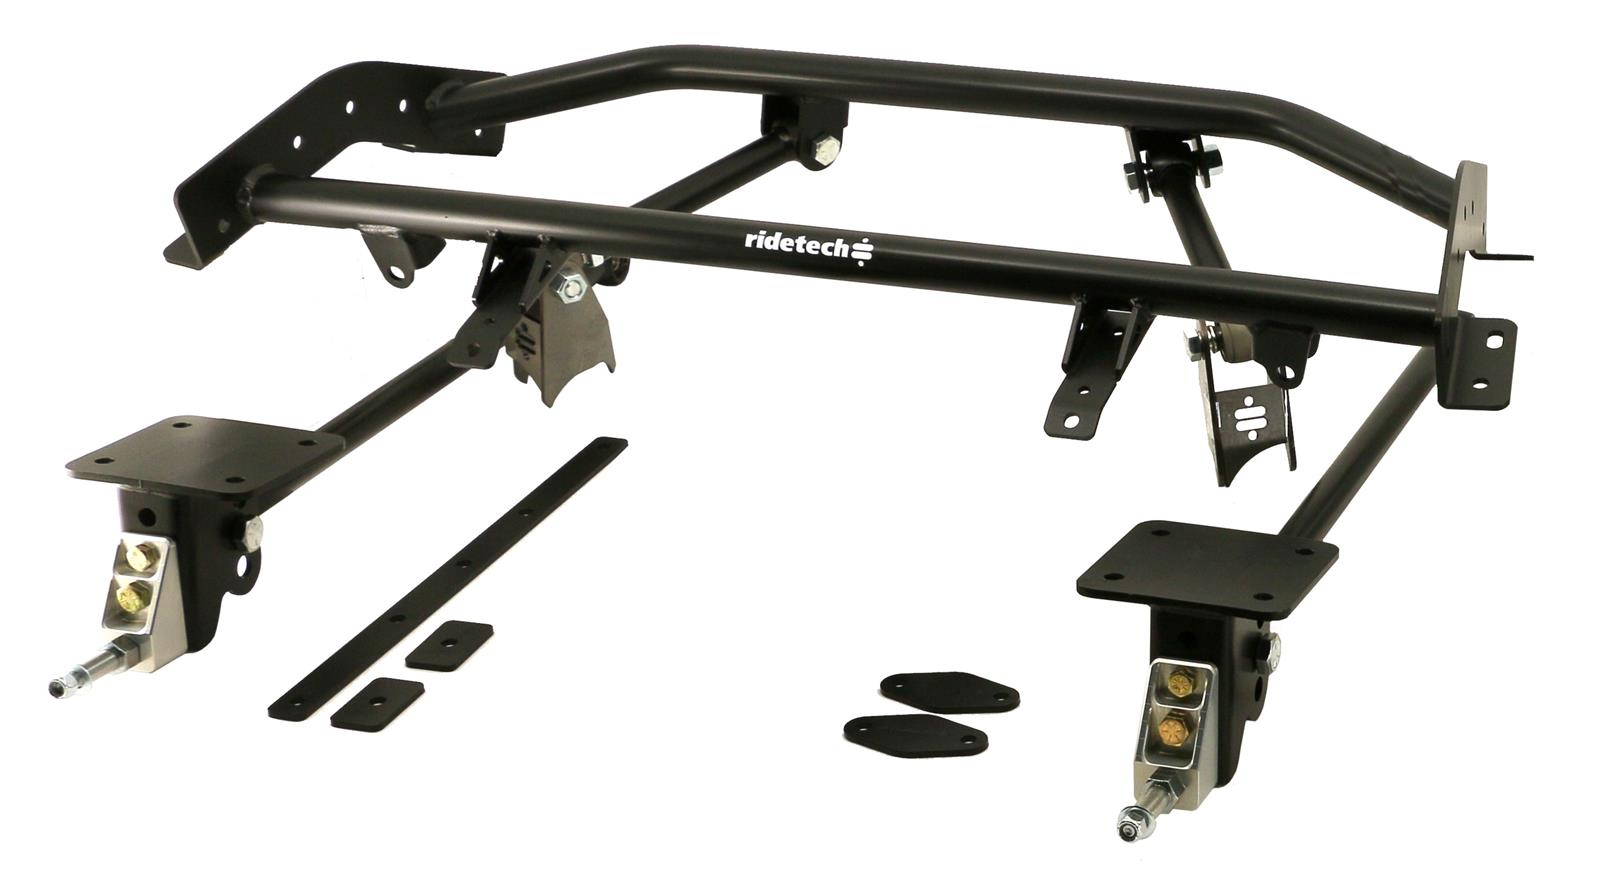 RideTech Bolt-On 4 Link Systems 11167199